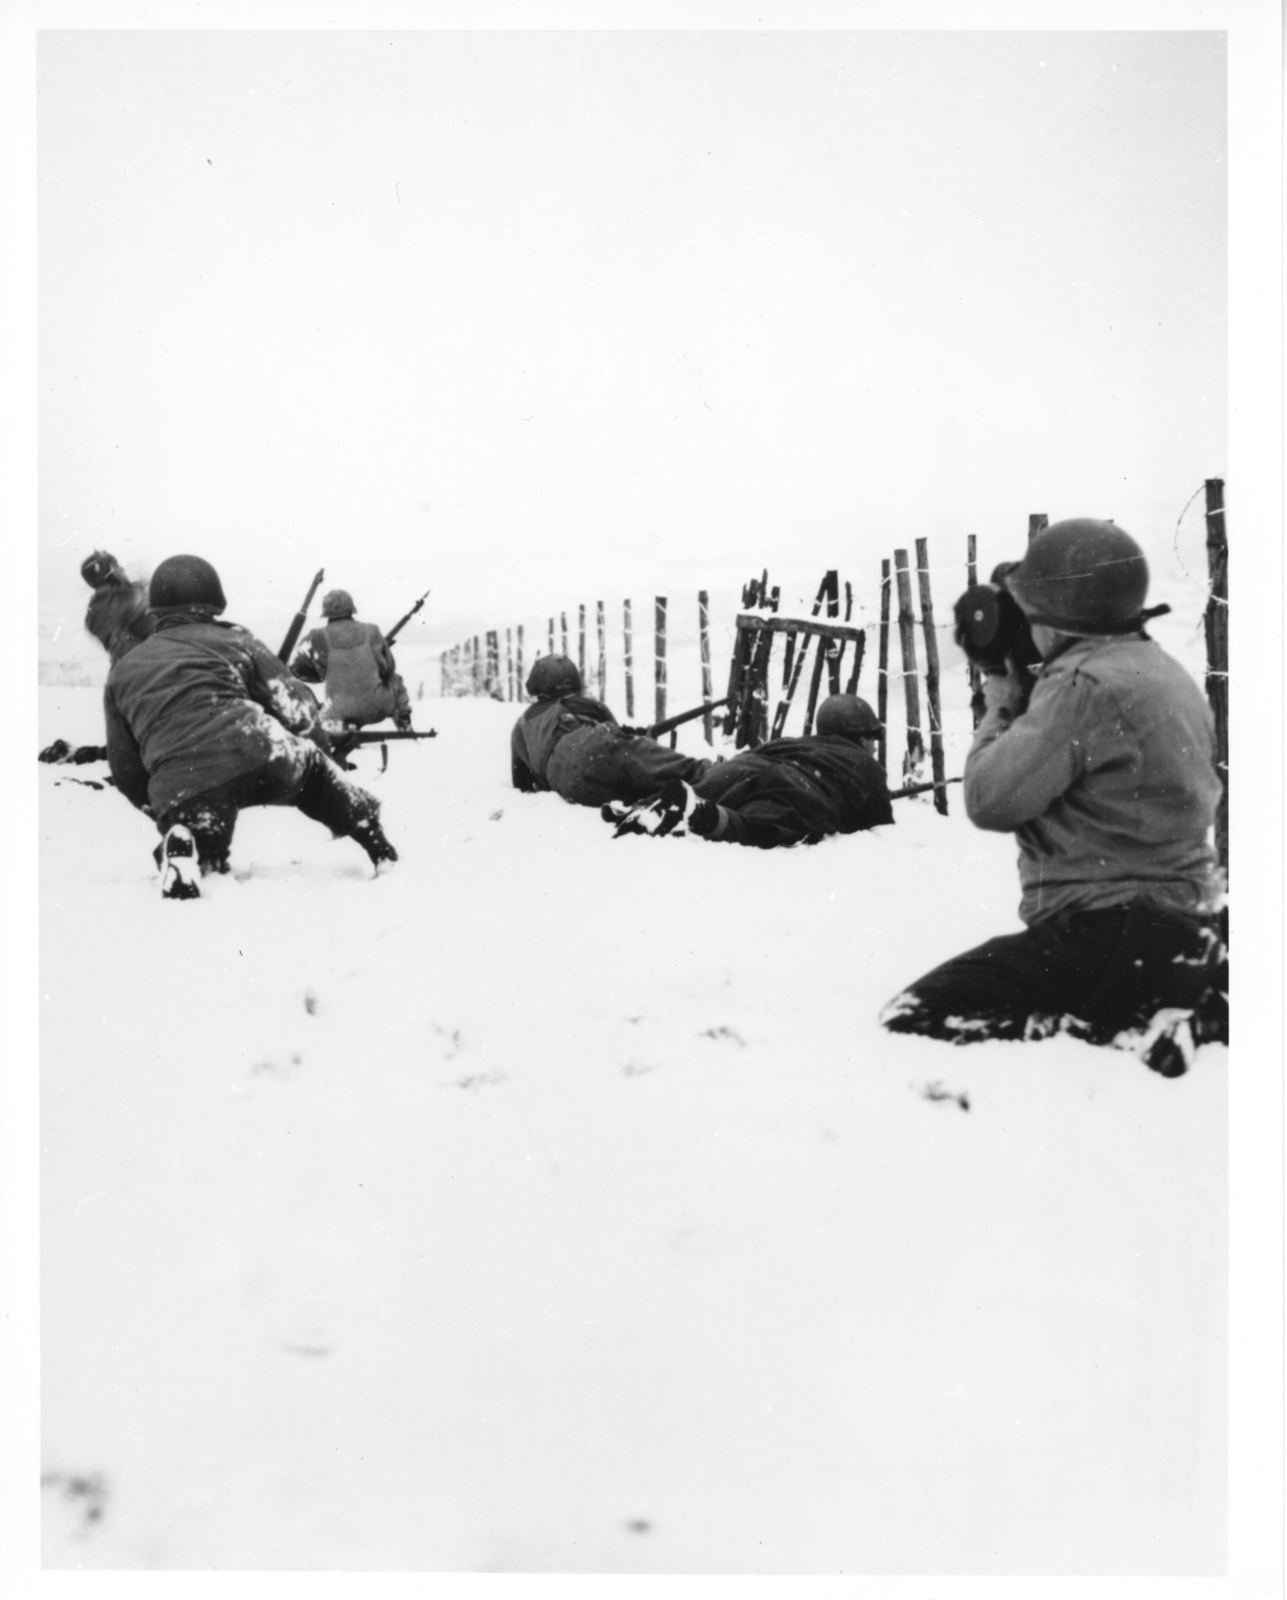 Photograph of a Patrol on the Outskirts of Beffe, Belgium